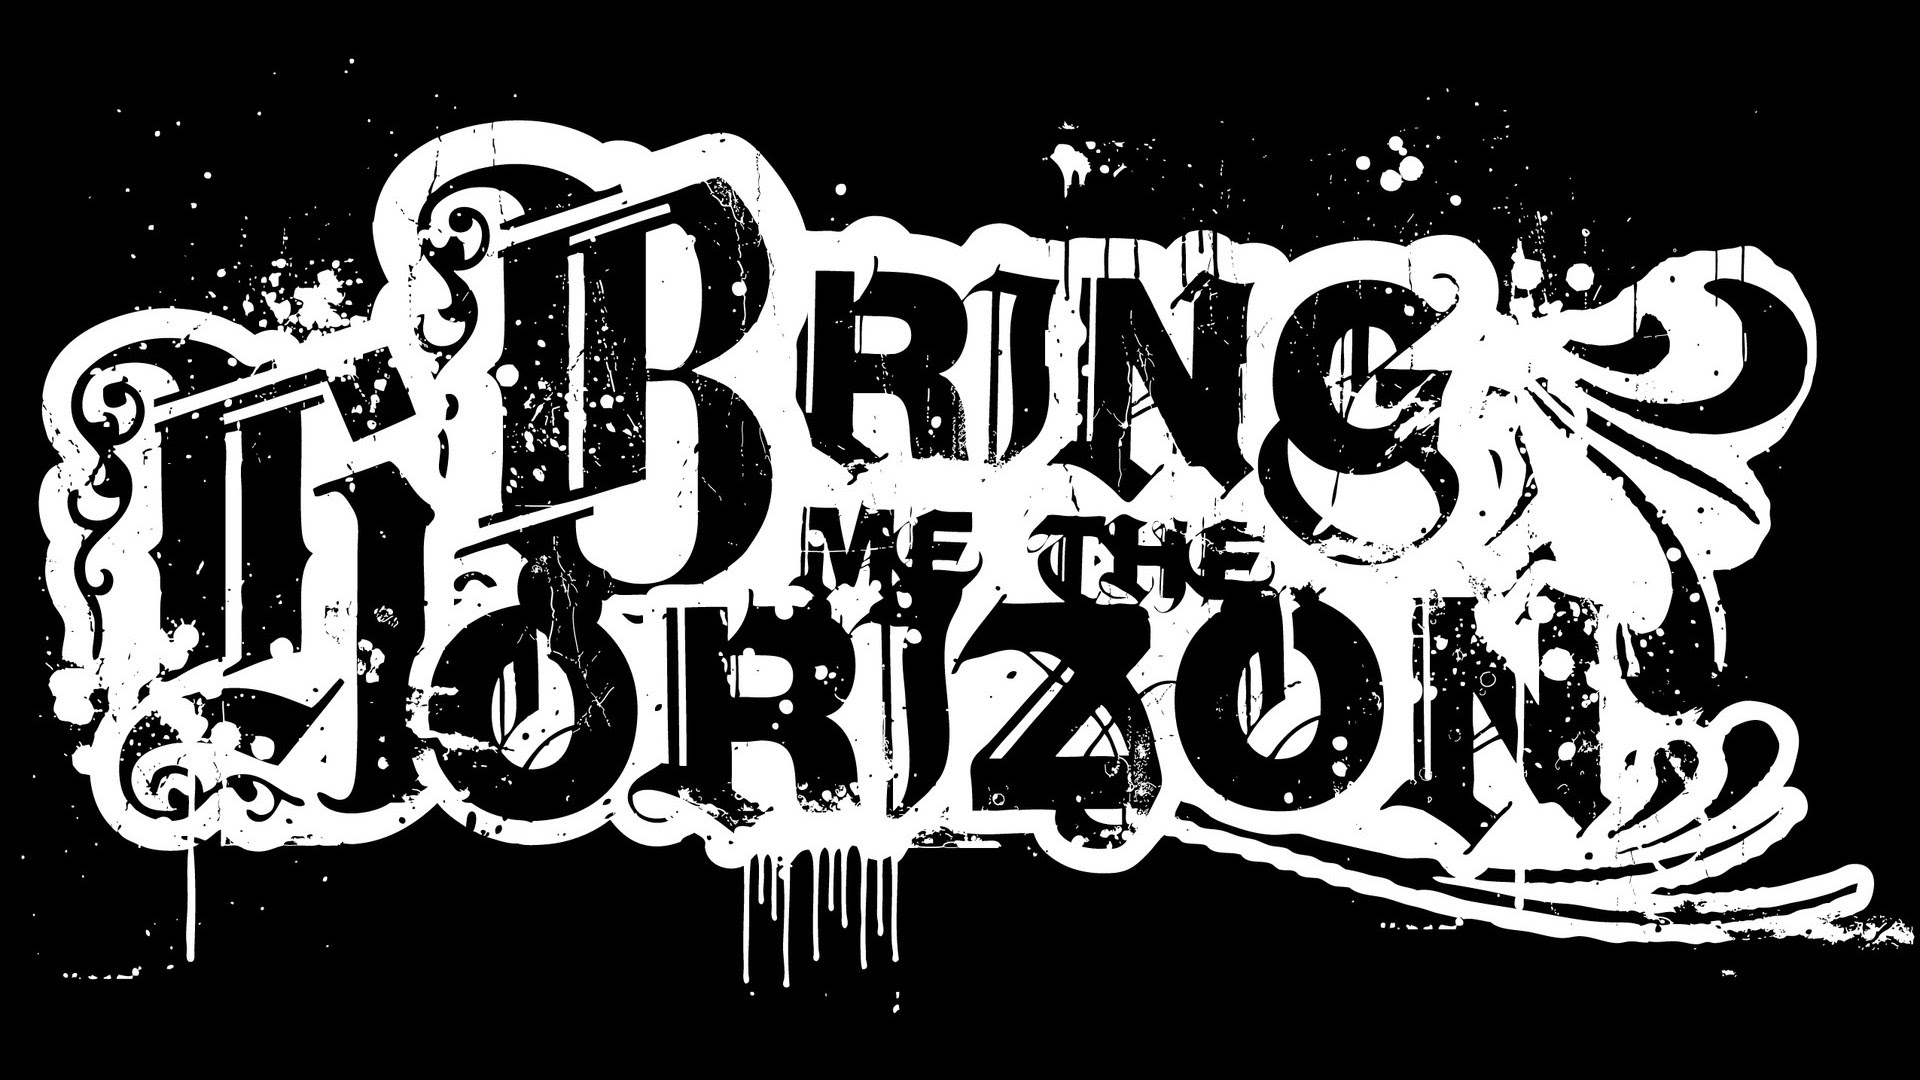 Bring Me The Horizon Wallpaper 1920x1080 80432